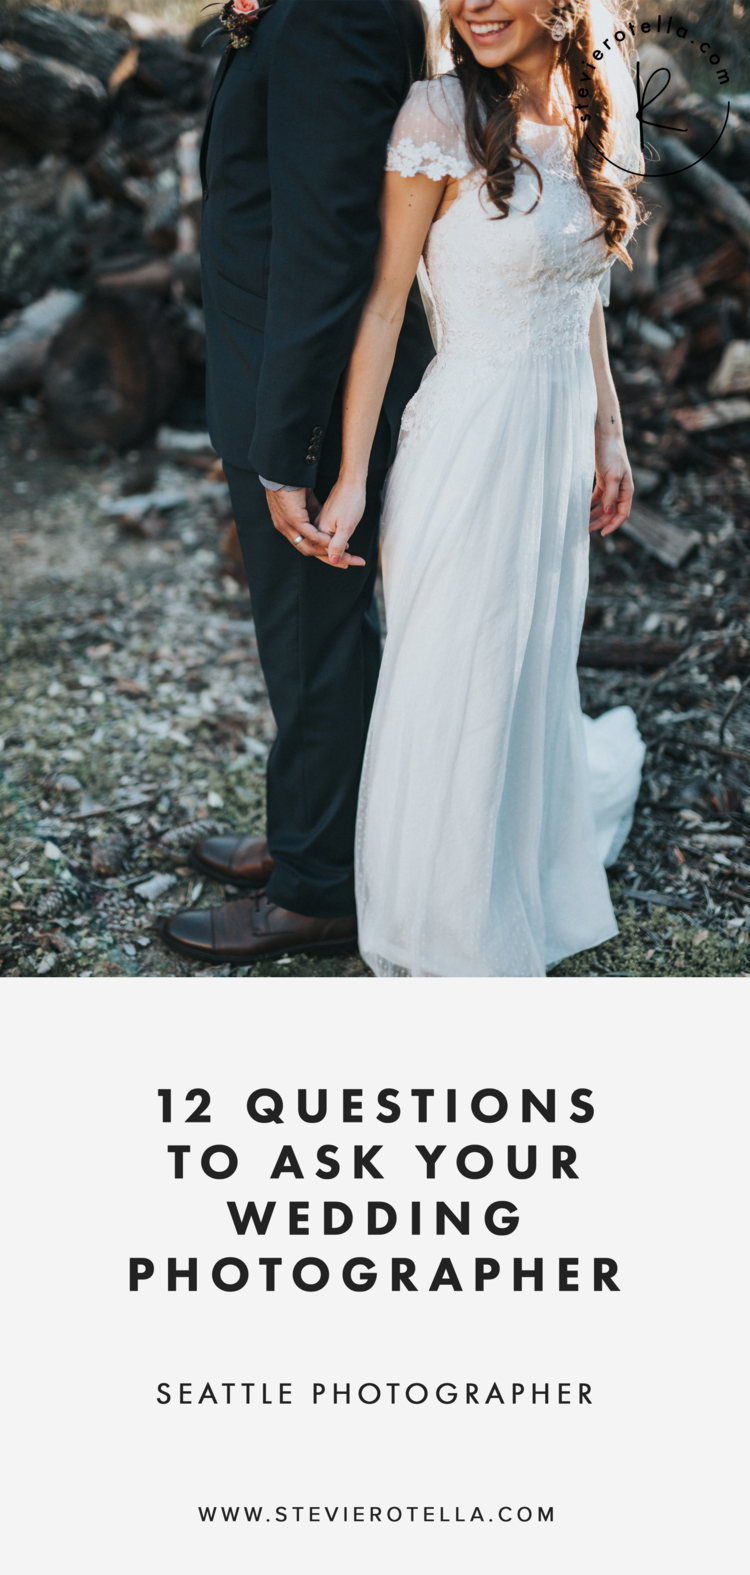 Questions To Ask Your Wedding Photographer.12 Questions To Ask Your Wedding Photographer Stevie Rotella